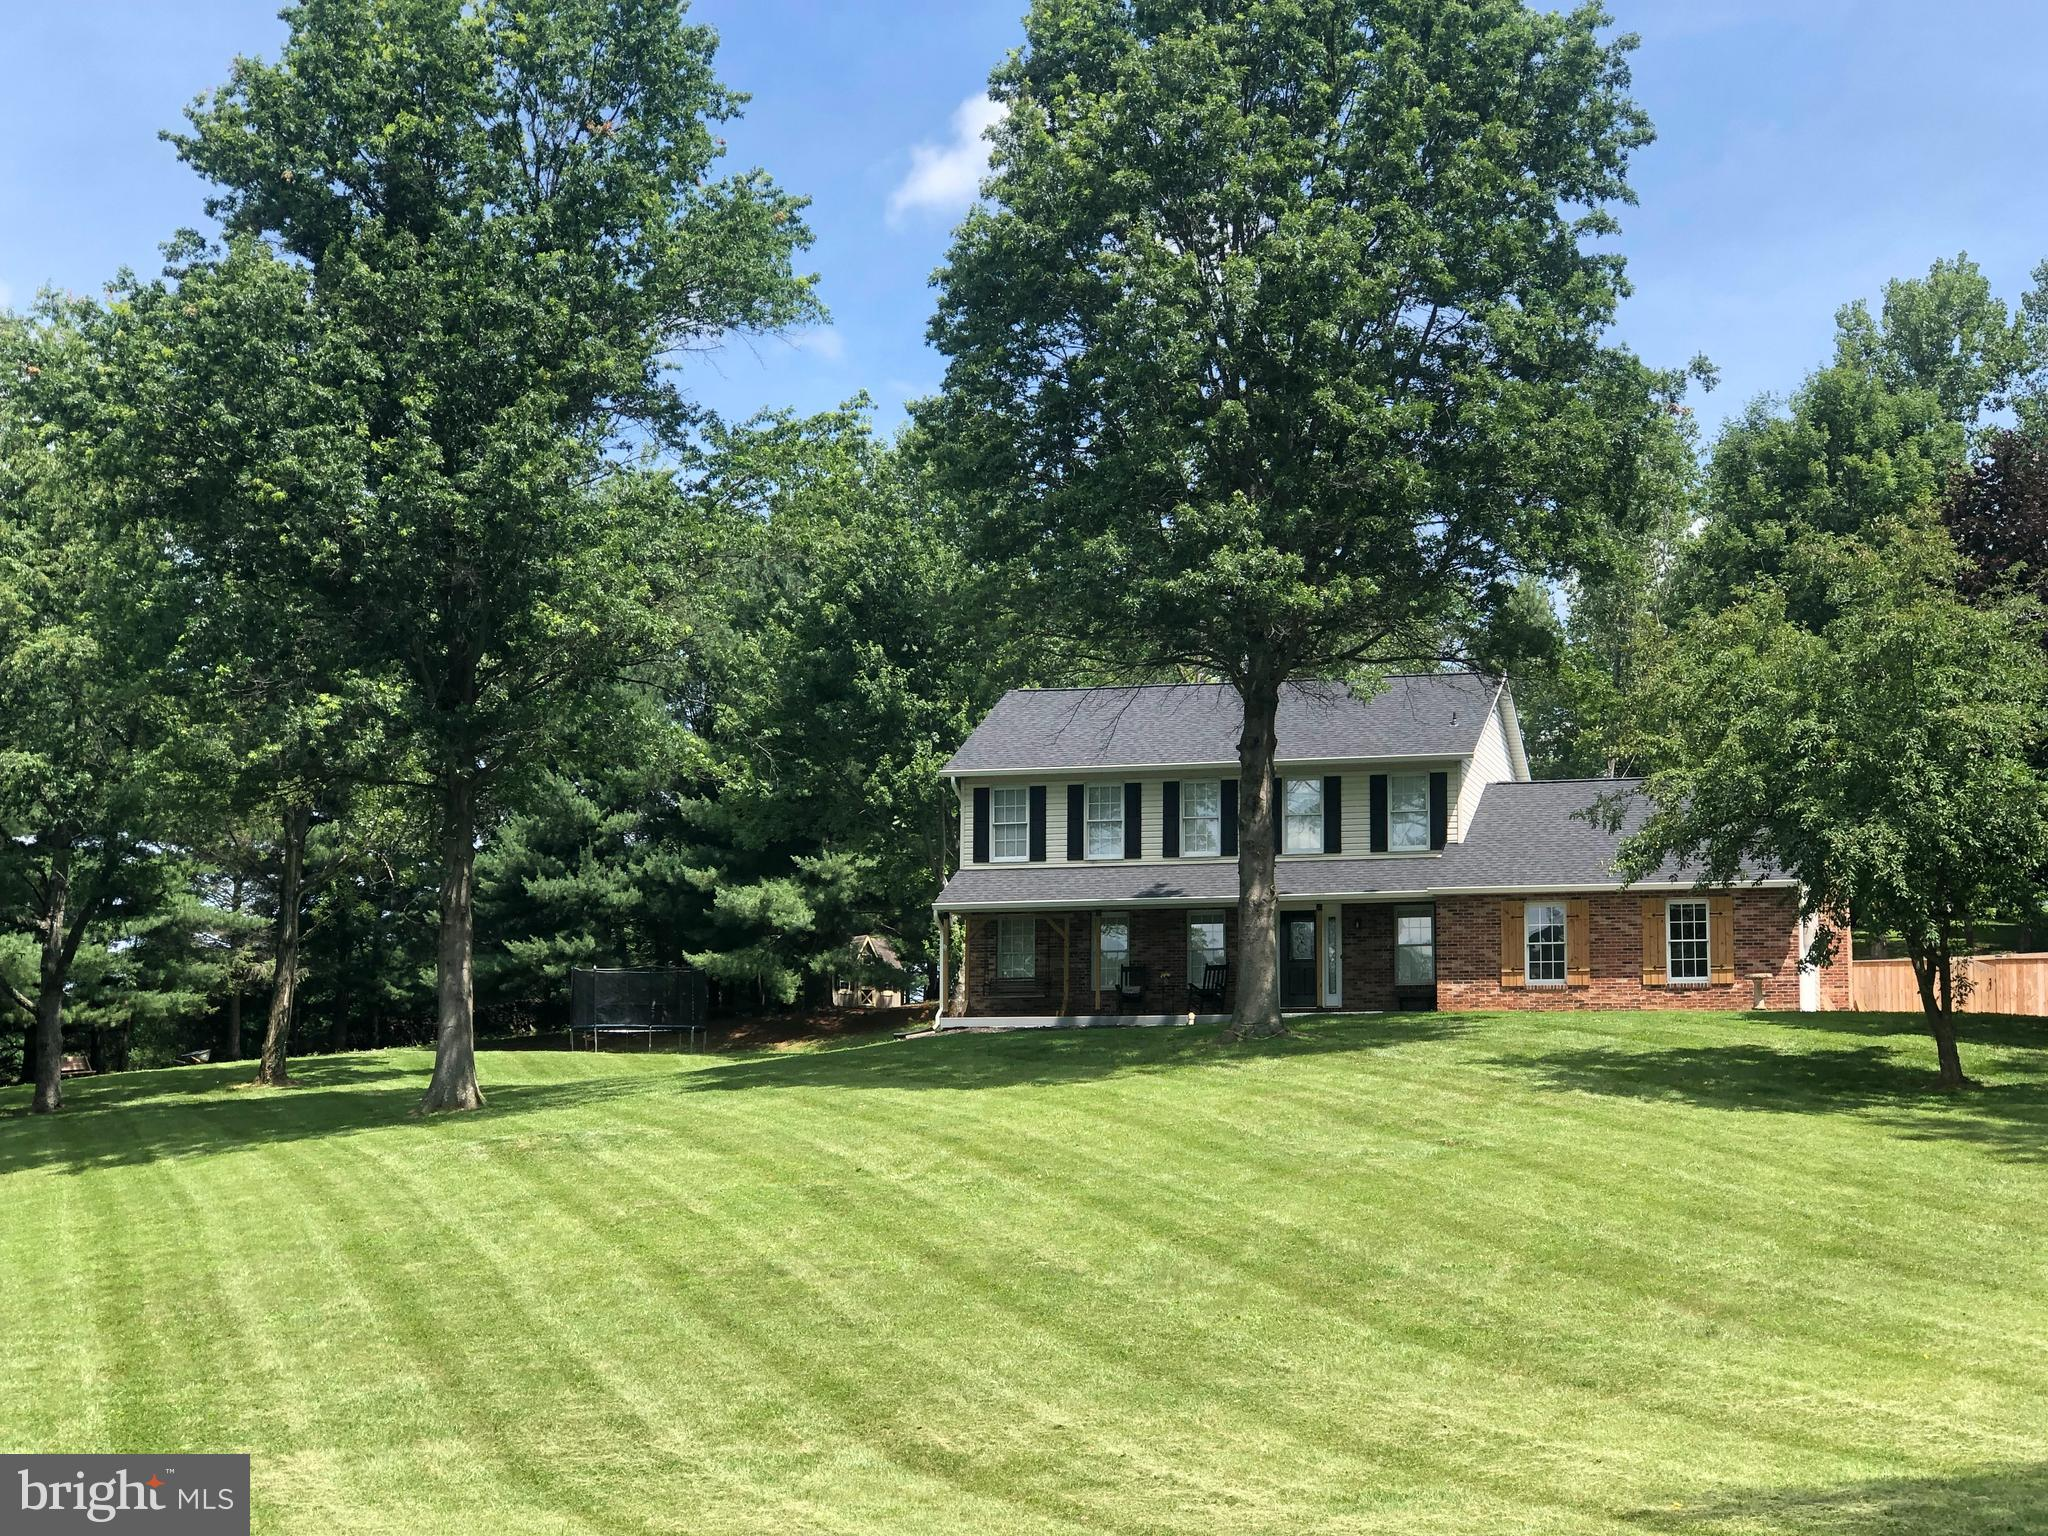 COME TO THE OPEN HOUSE for this beautiful home in Carroll County on July 17, 2021 from 11-1.  This gorgeous completely updated colonial style home is nestled up on a hill overlooking 3 acres of land.  With a remodel in excess of 150K to include brand new kitchen and appliances, new roof, A/C units (upstairs and downstairs), hardwood floor, this home is move- in ready!  On the first floor, you will enjoy nice family meals in the brand new eat-in kitchen with a custom-built bench that includes extra storage space or at the granite counter bar.  Relax and keep warm on those cold nights by the recently renovated masonry fireplace.  Upstairs you will find 4 bedrooms including a master bedroom with a newly renovated stunning master bathroom.  In the basement, there is plenty of space for family movie night or an exercise area with an updated half bath, utility room, storage space, and basement walkout for easy access to the backyard and pool.  You will have plenty of space for your vehicles in the 2-car garage and extra driveway pad for parking.  Walk through the new fence and you will feel like you have entered paradise, when you see the newly renovated HEATED pool.  Soak up the sun on the newly built wood deck and enjoy the privacy and peacefulness of your own sanctuary.  After a full day of swimming, walk over to the firepit, where you can enjoy the tranquility of the evening sunset.  This home is near top rated schools with close access to interstates 70 & 270. Don't miss the opportunity to make this beautiful home your own!